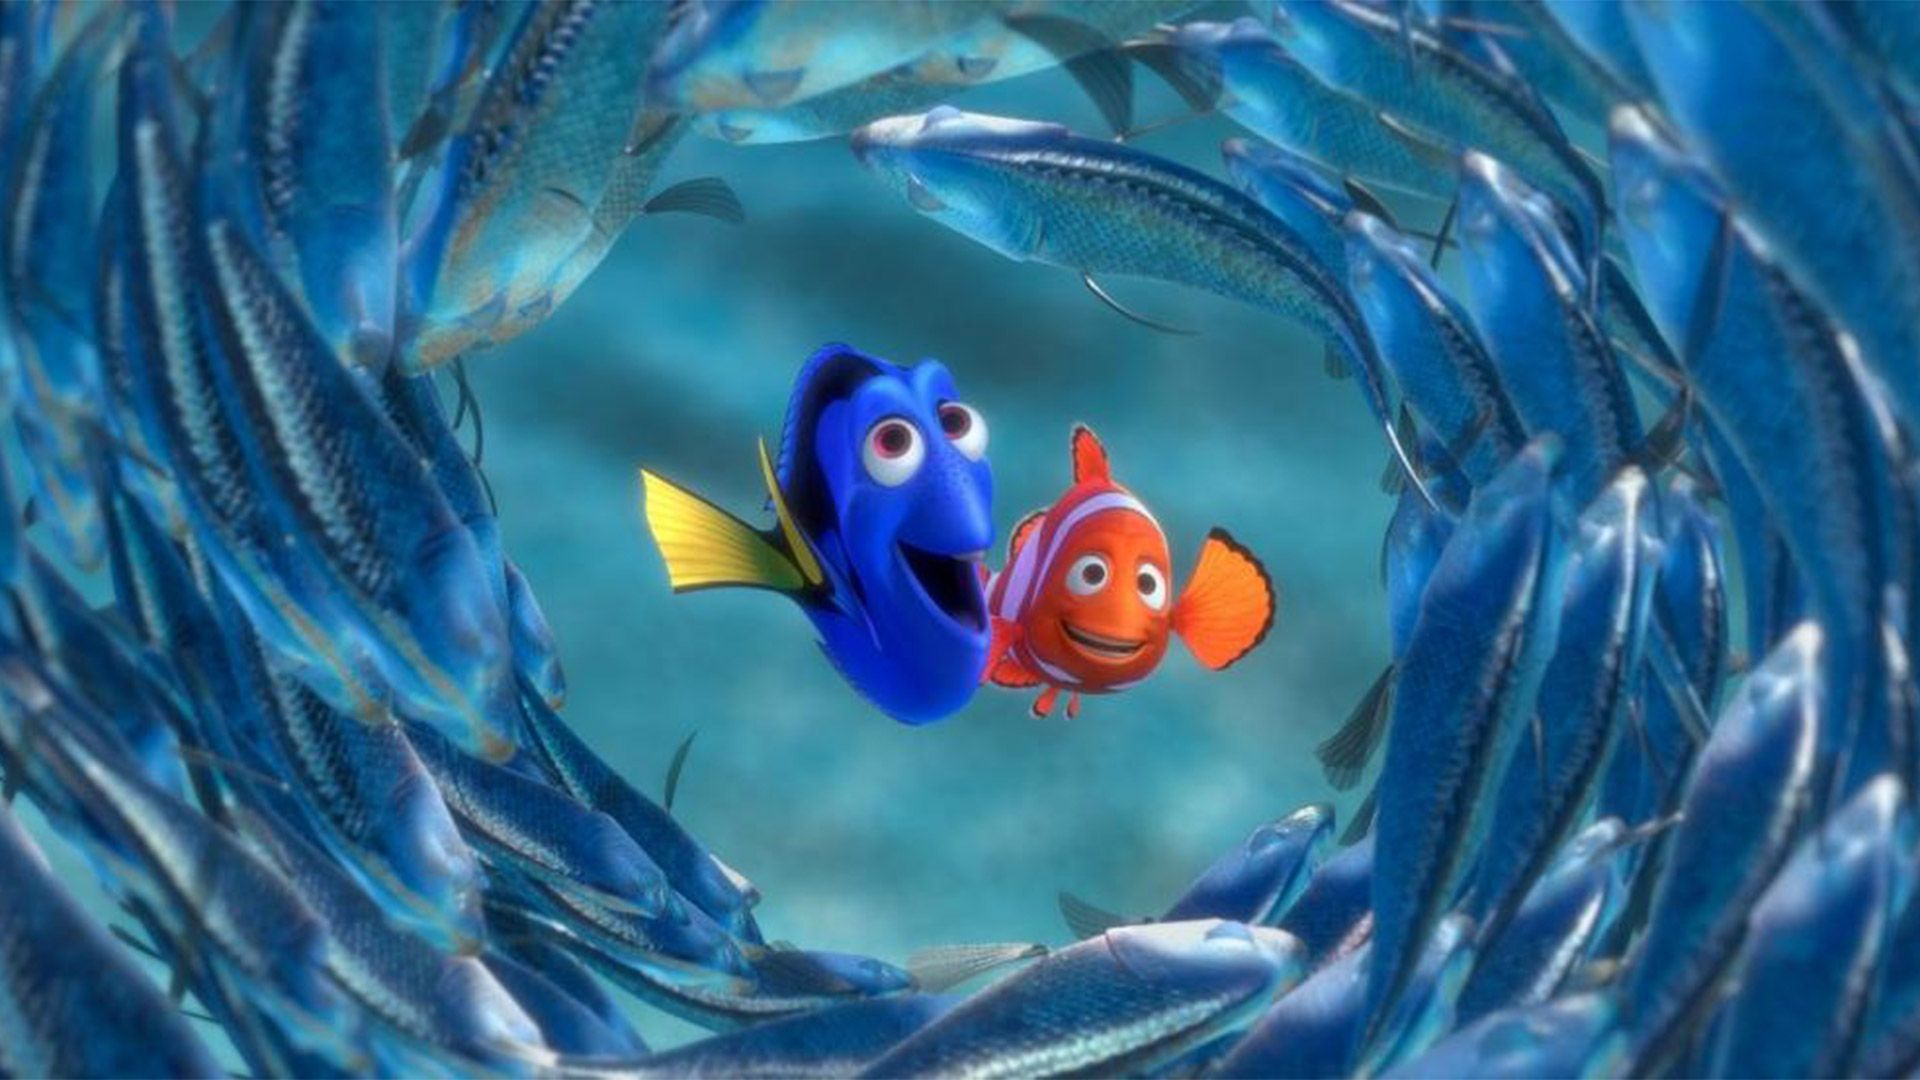 Best Kids Movies - Finding Nemo